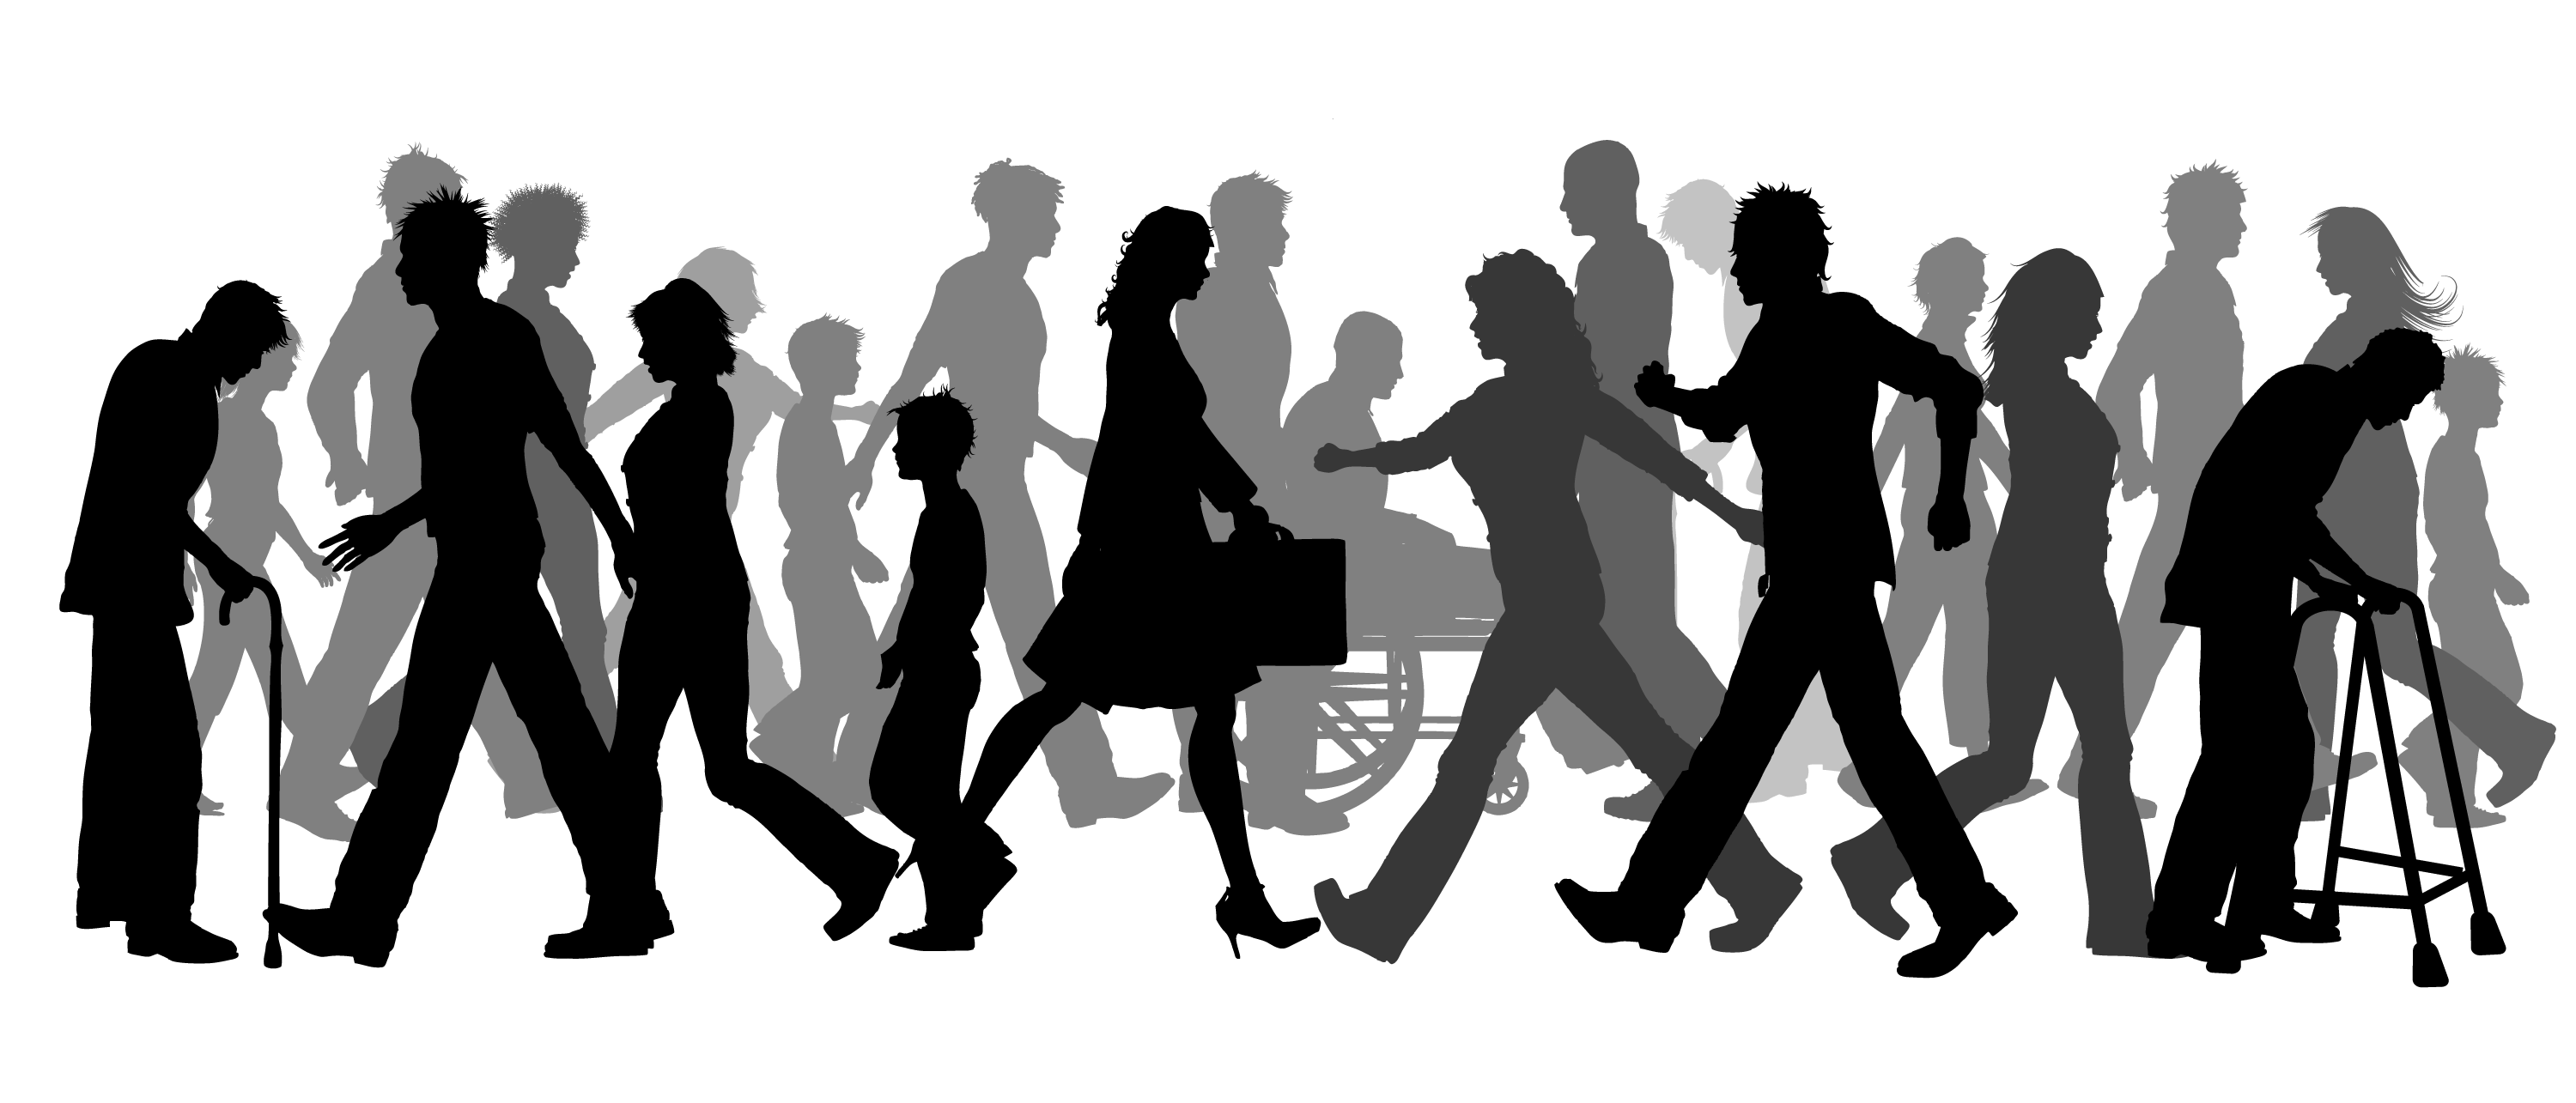 Walking clip art group. Humans clipart community person